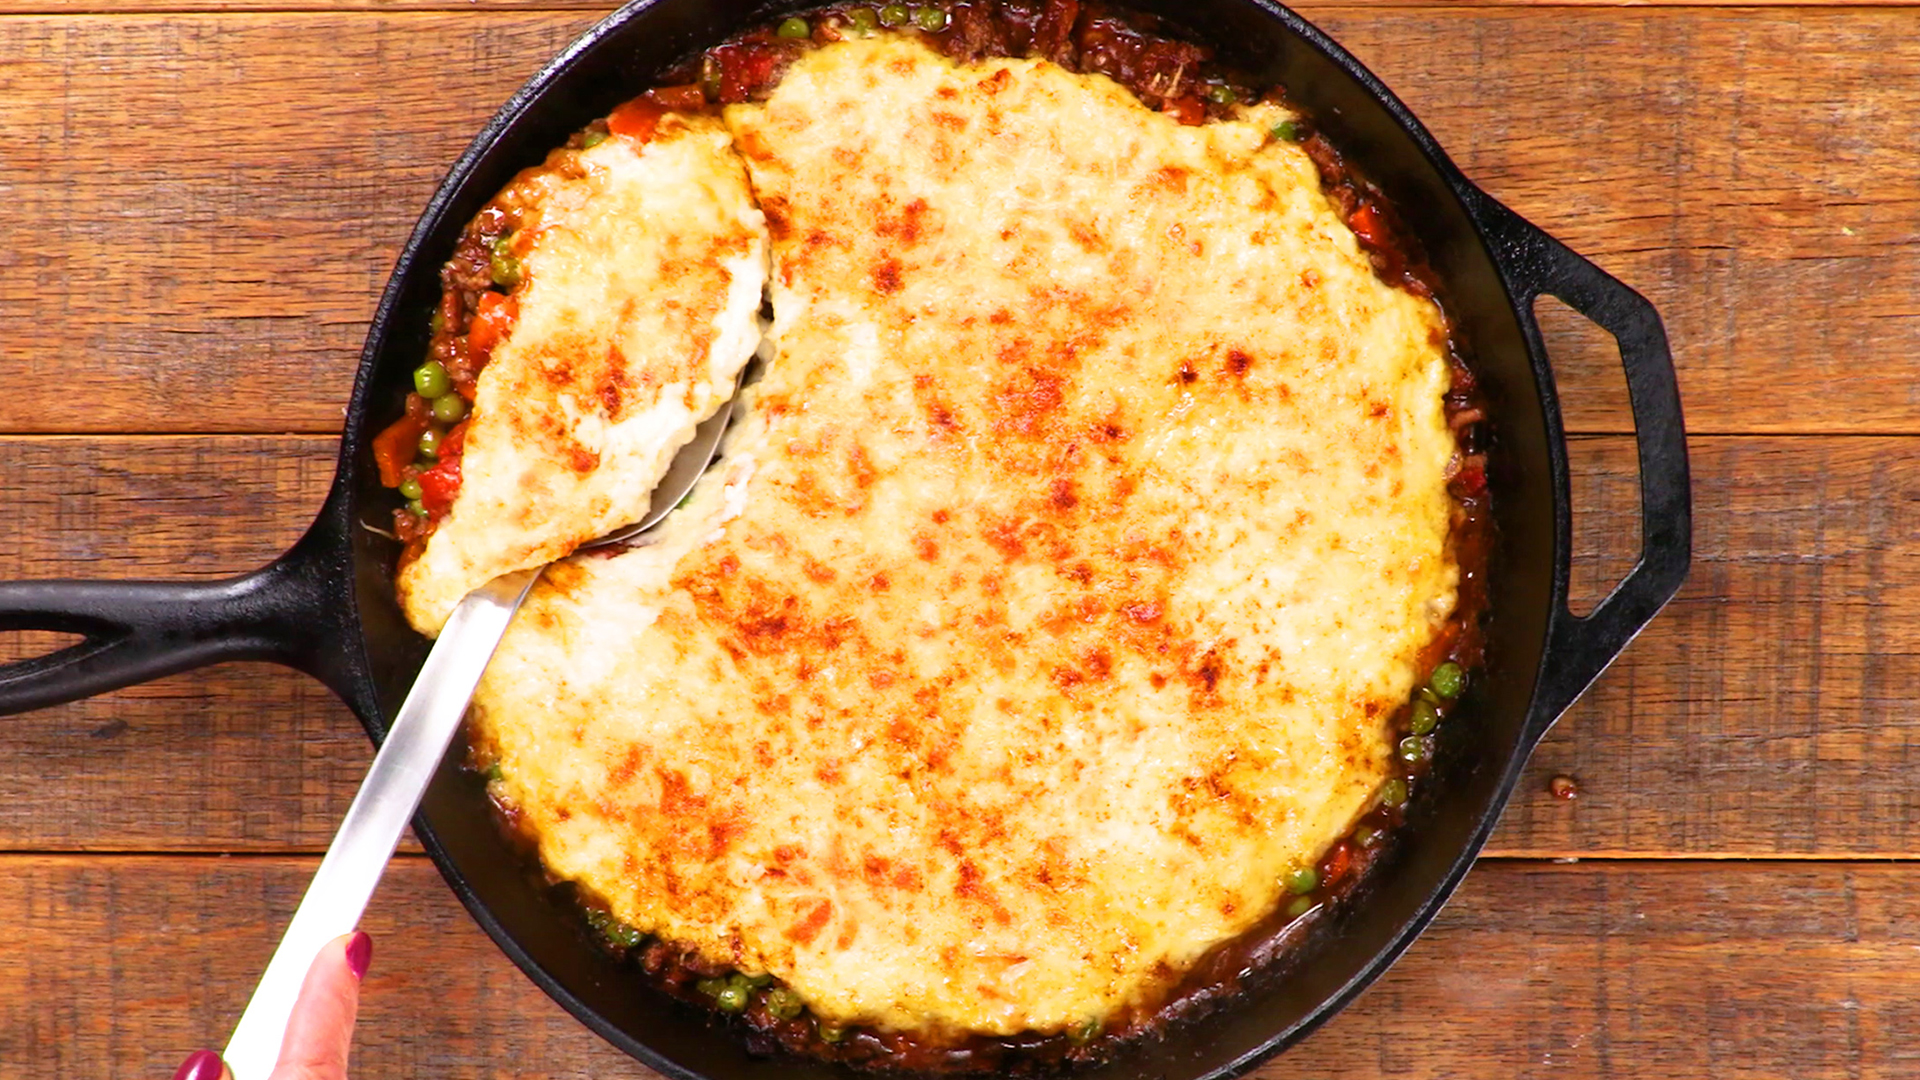 keto-shepherds-pie-16x9-Frame.jpg